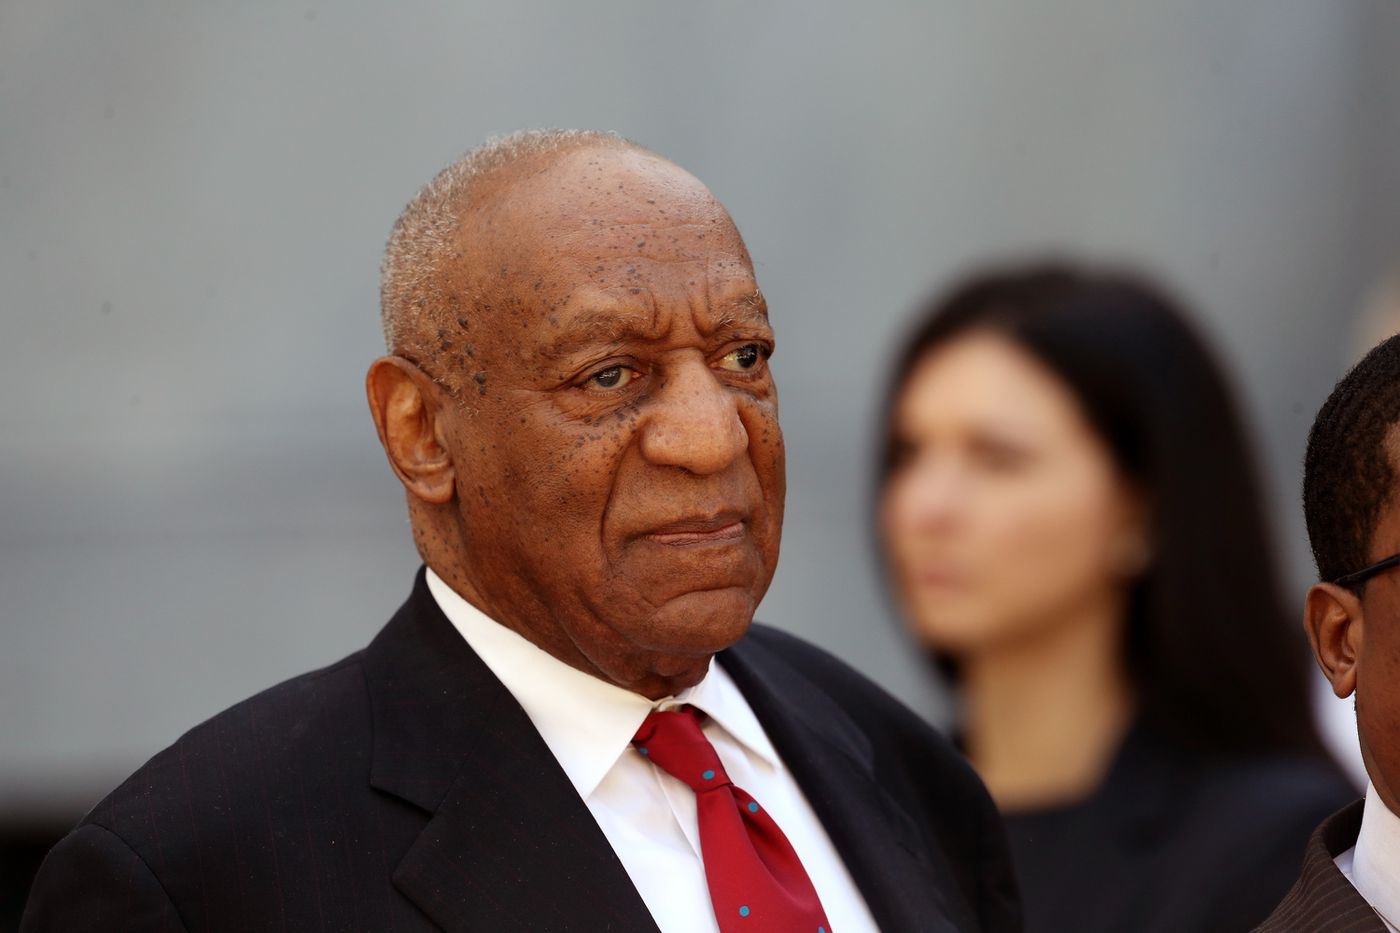 Remove Bill Cosby's star from the Hollywood Walk of Fame | Opinion